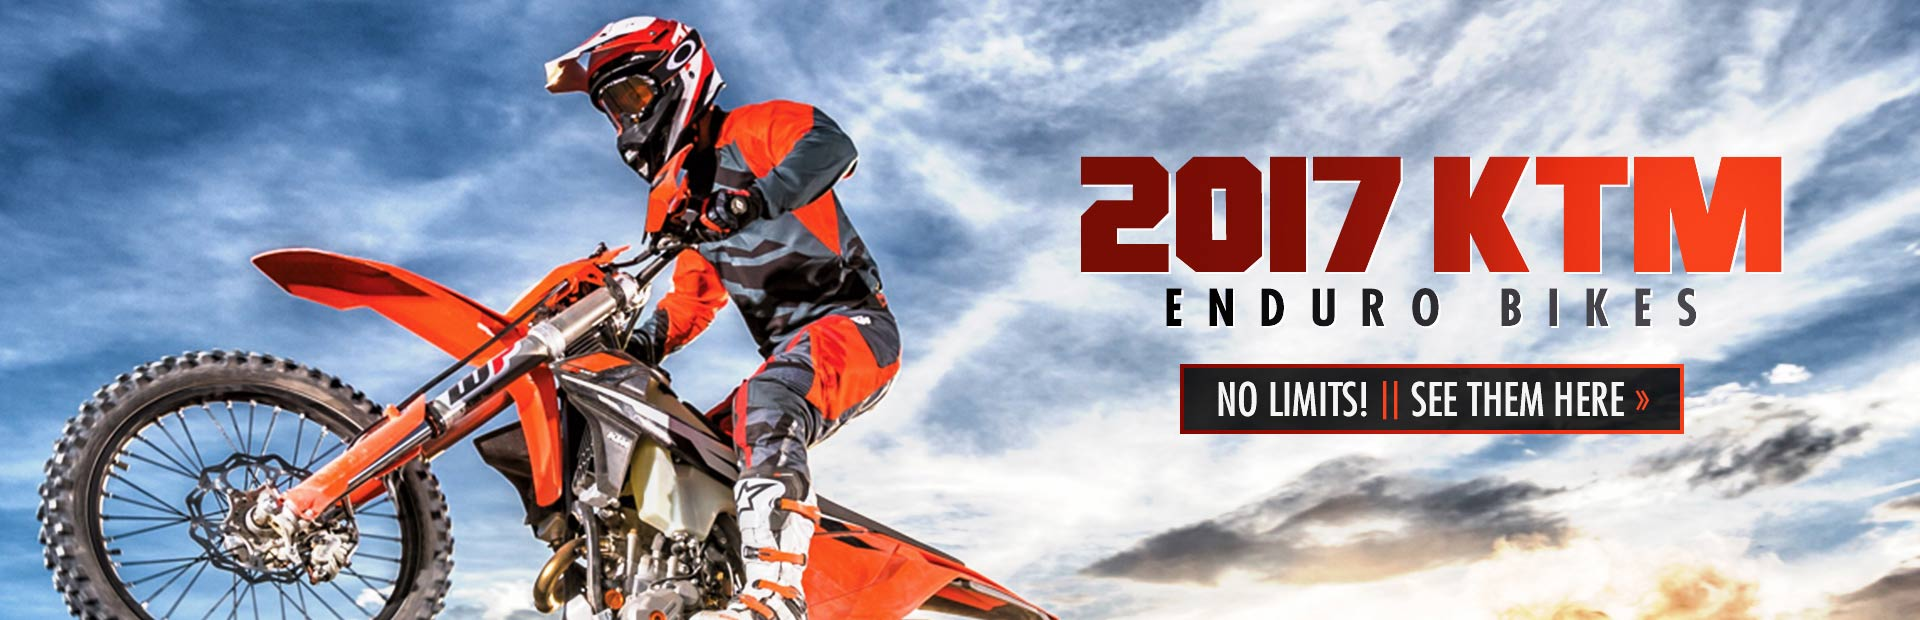 2017 KTM Enduro Bikes: Click here to view the models.